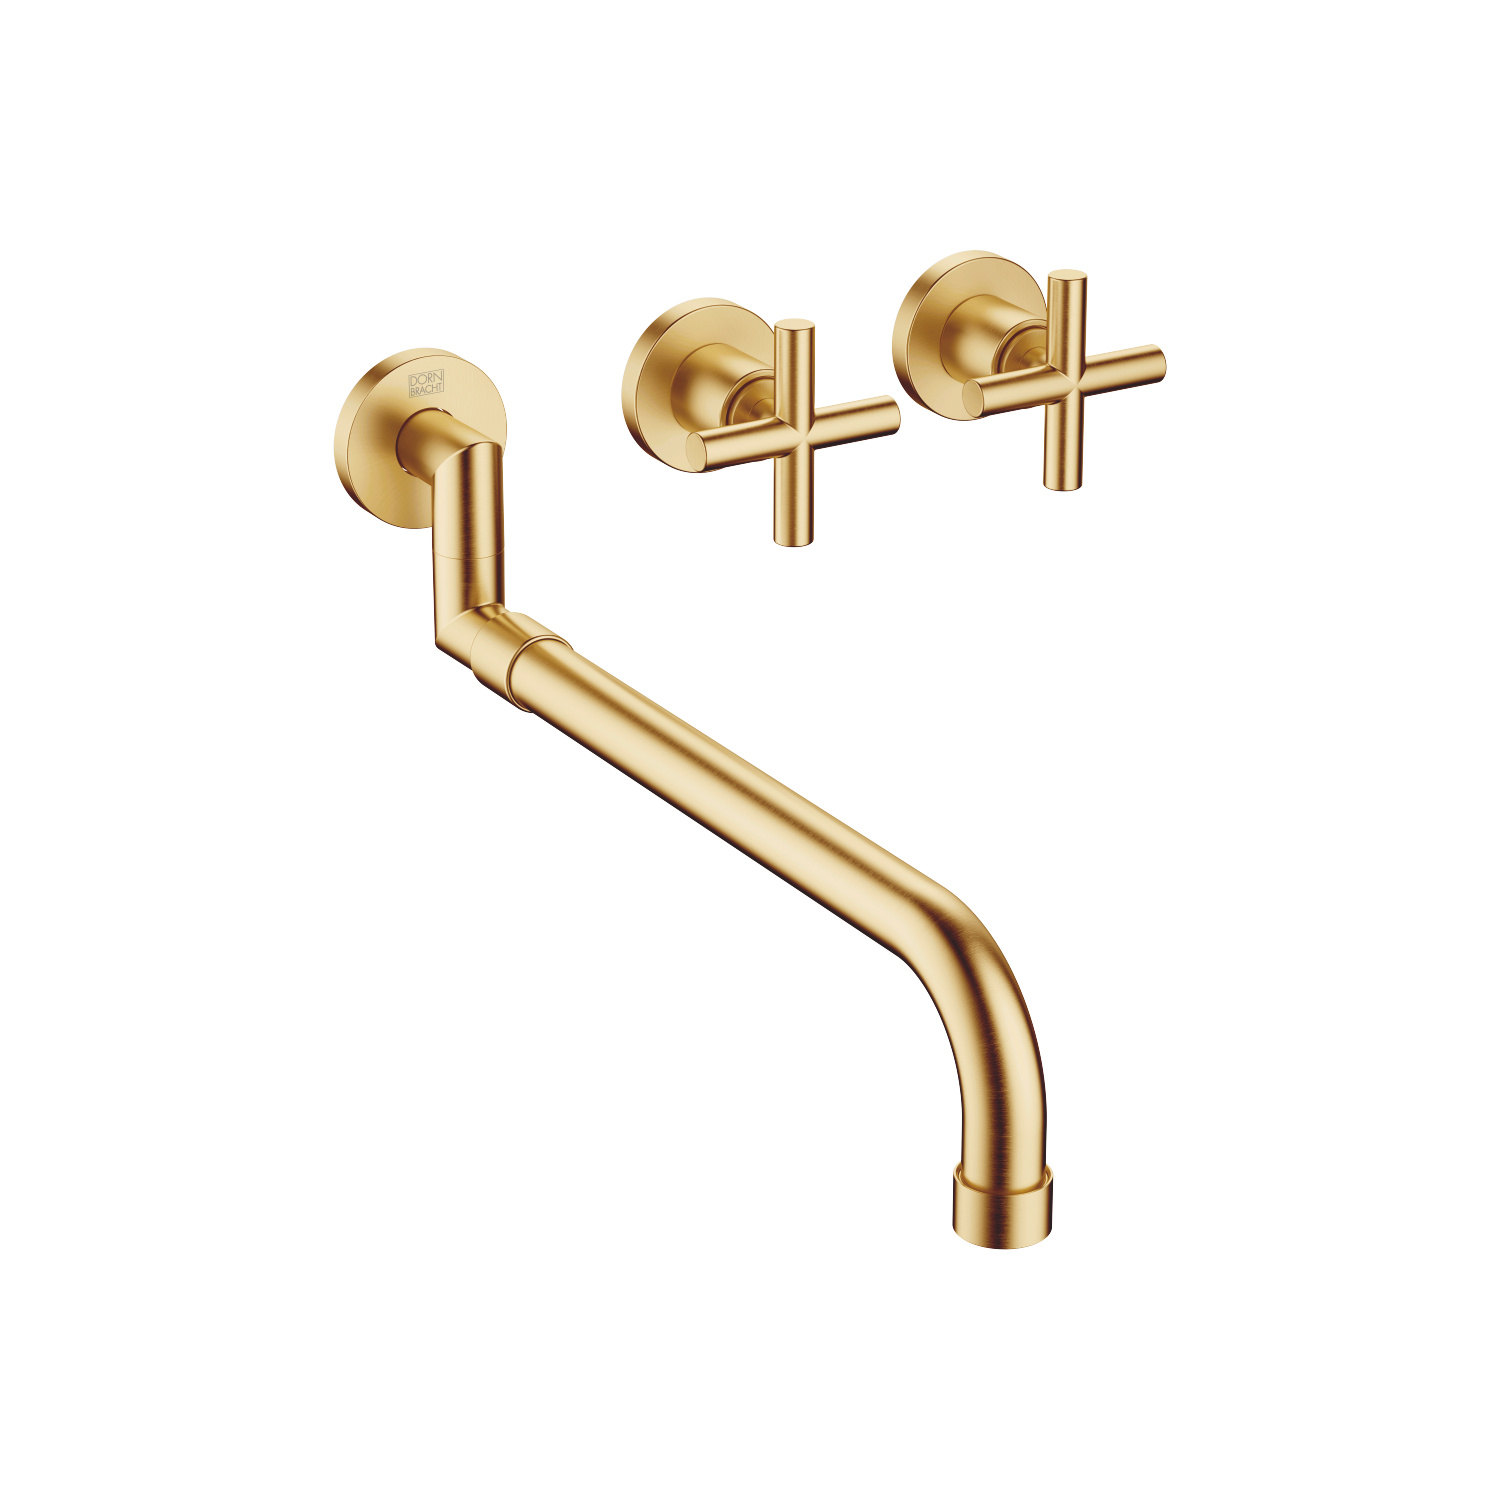 Wall-mounted sink mixer with extending spout - brushed Durabrass - 36 819 892-28